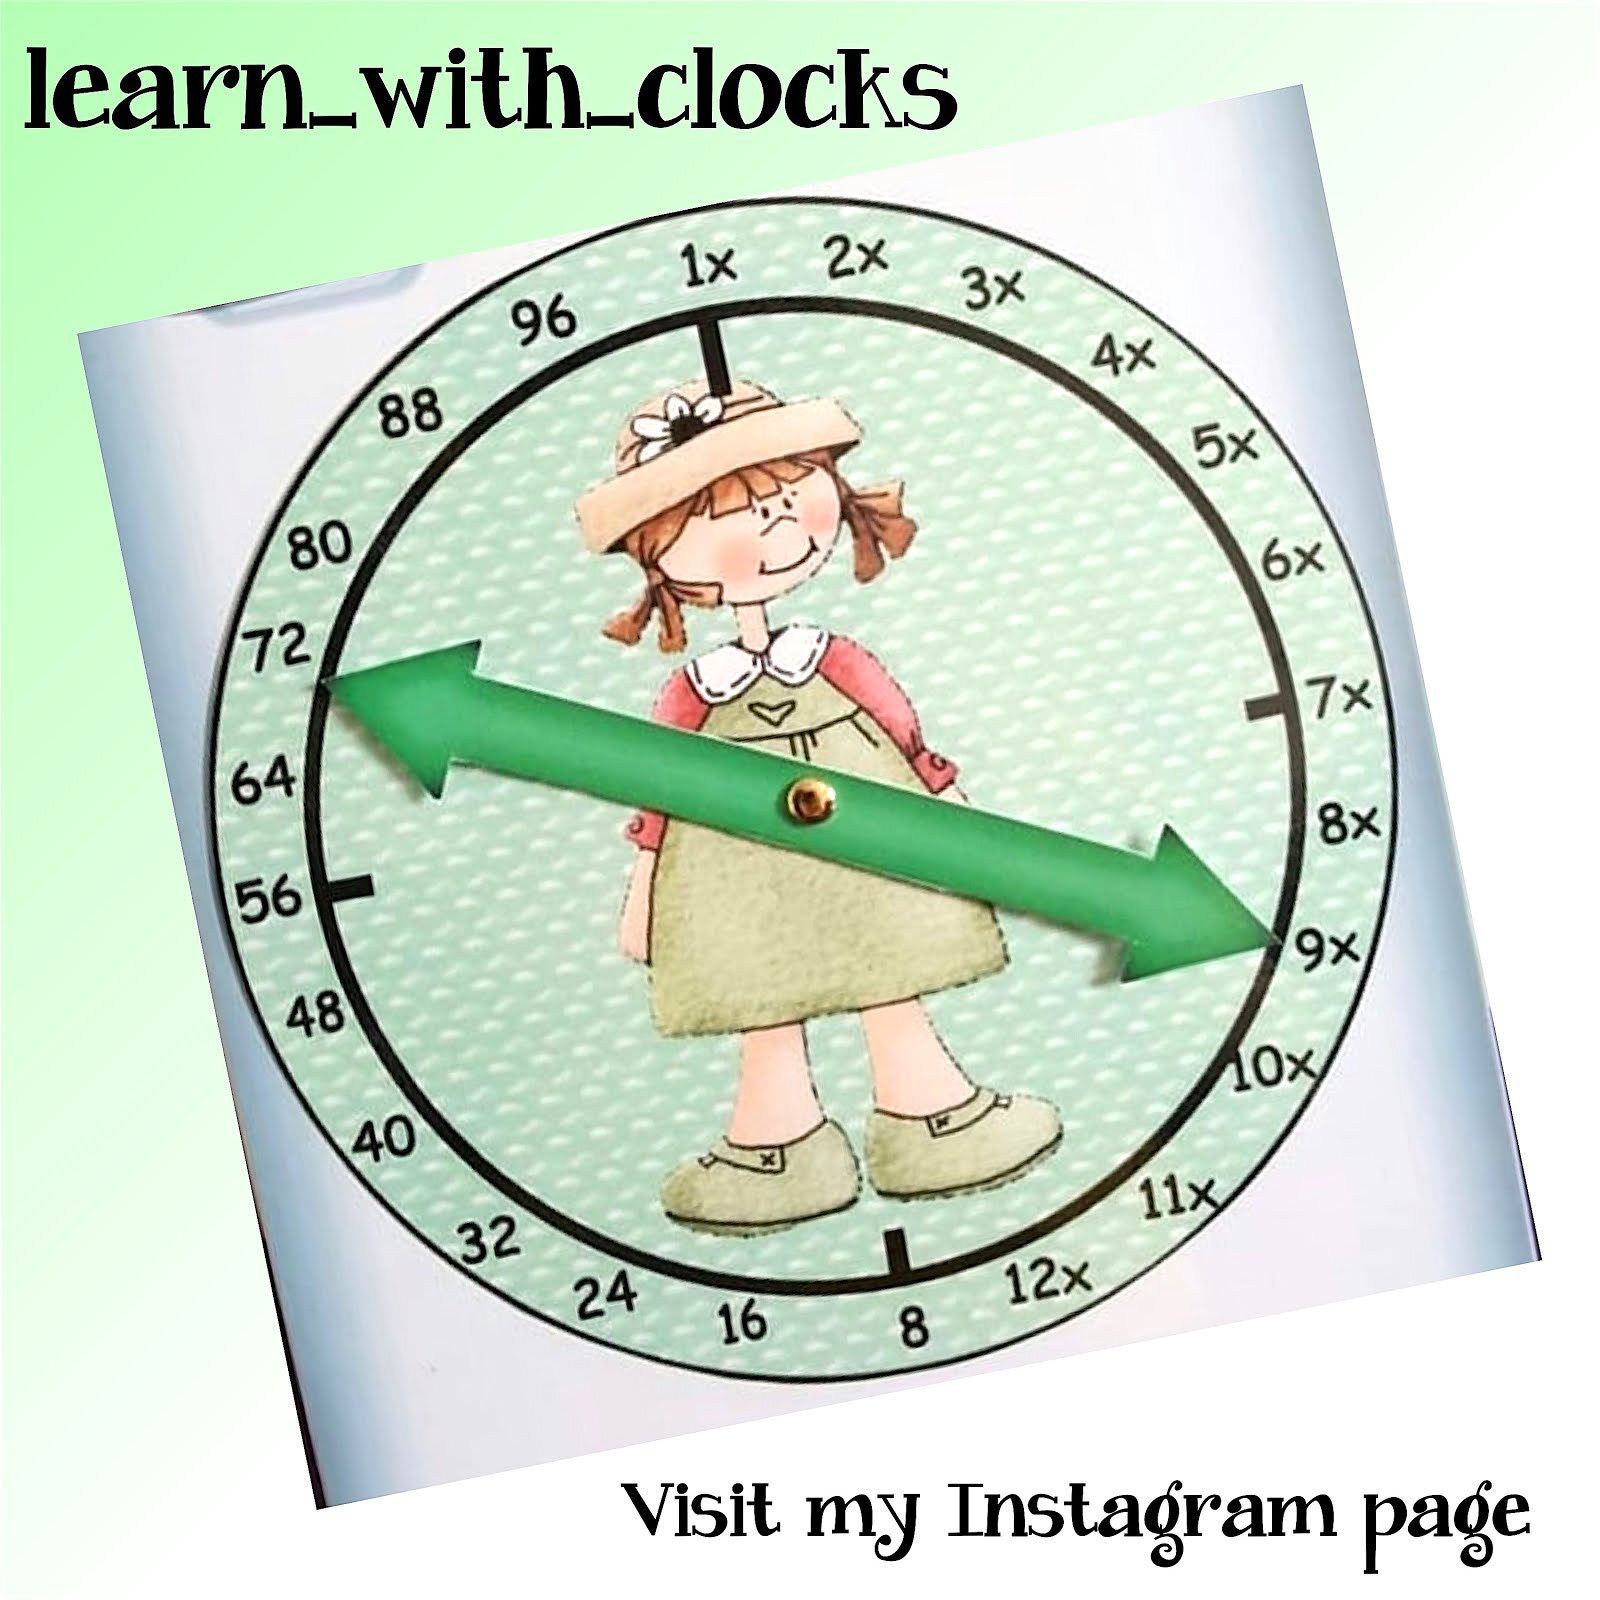 learn-with-clocks